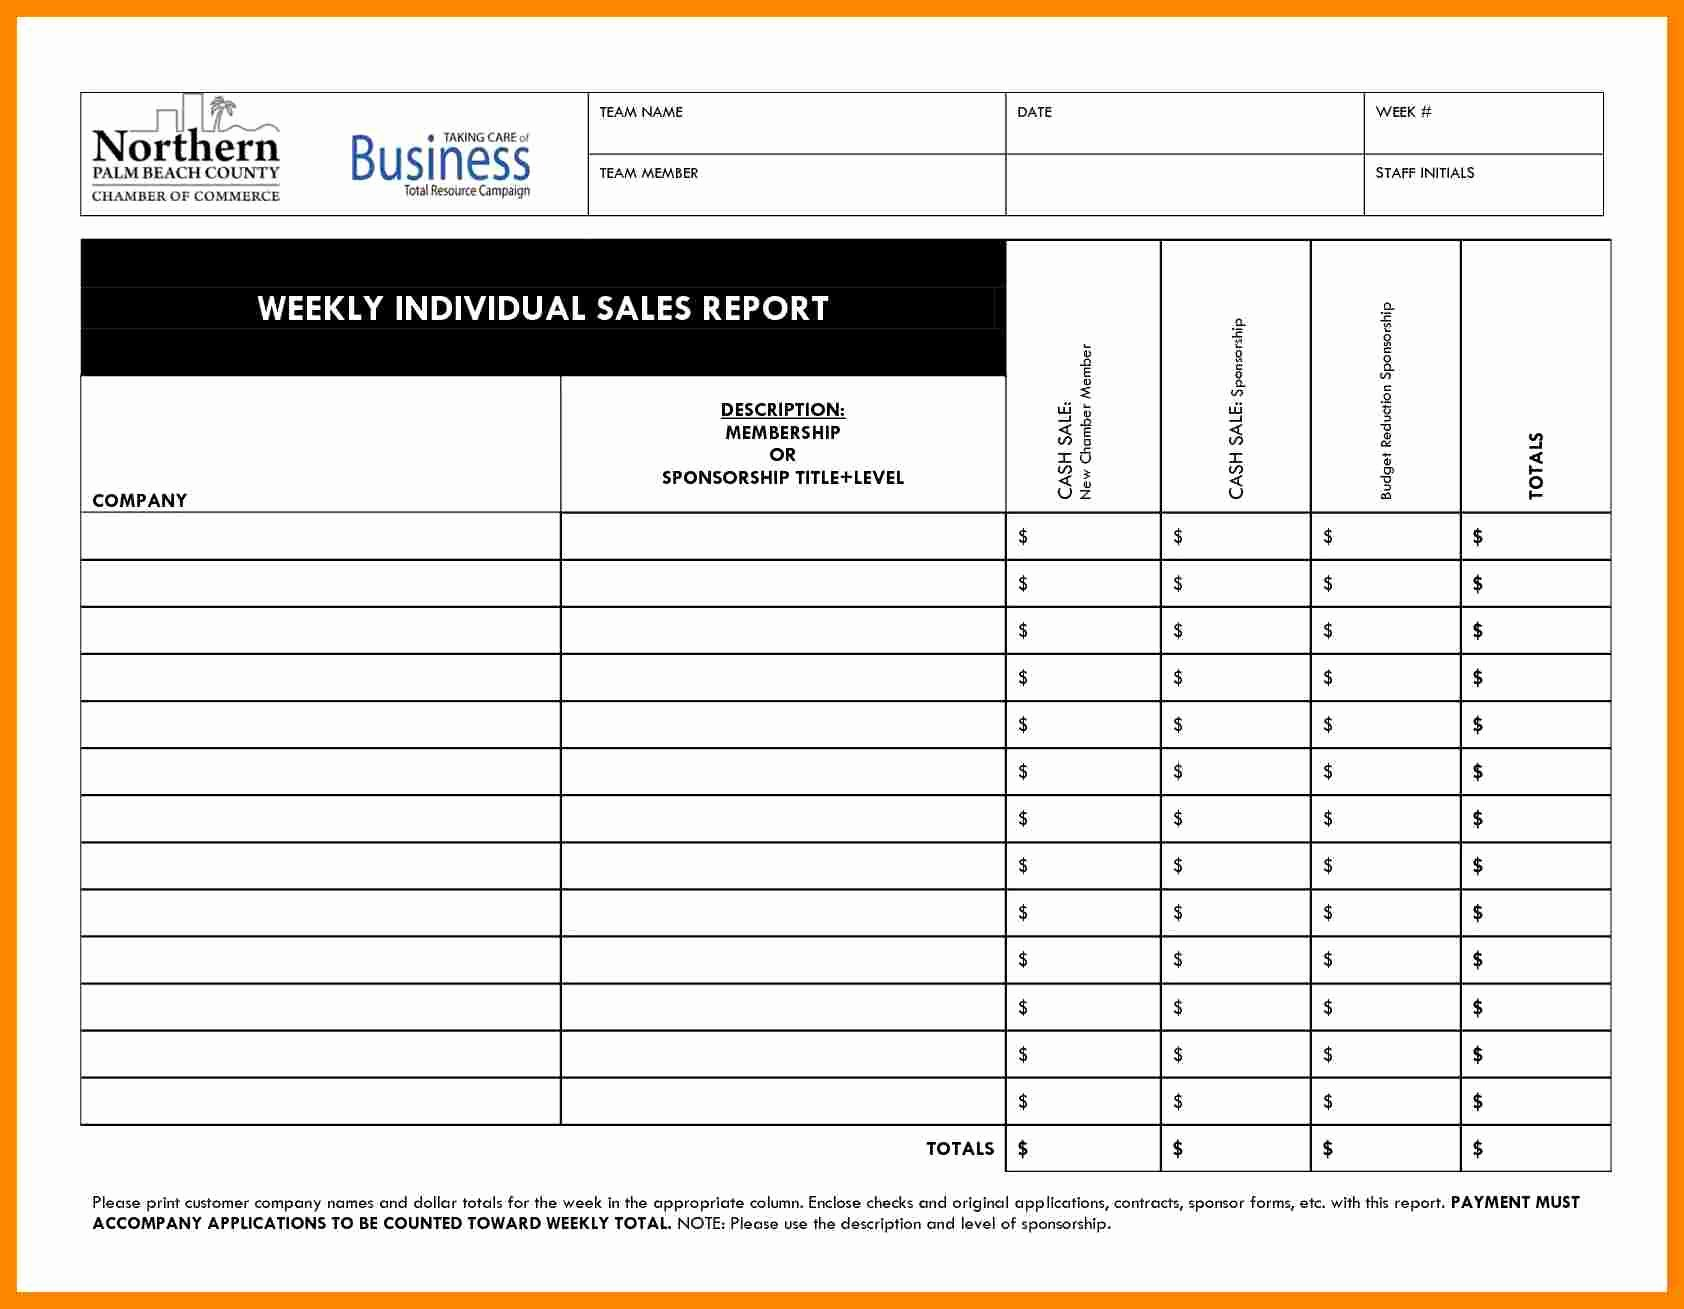 Security Officer Daily Activity Report Sample Luxury Weekly Activity Report Template Excel Free Daily Sales